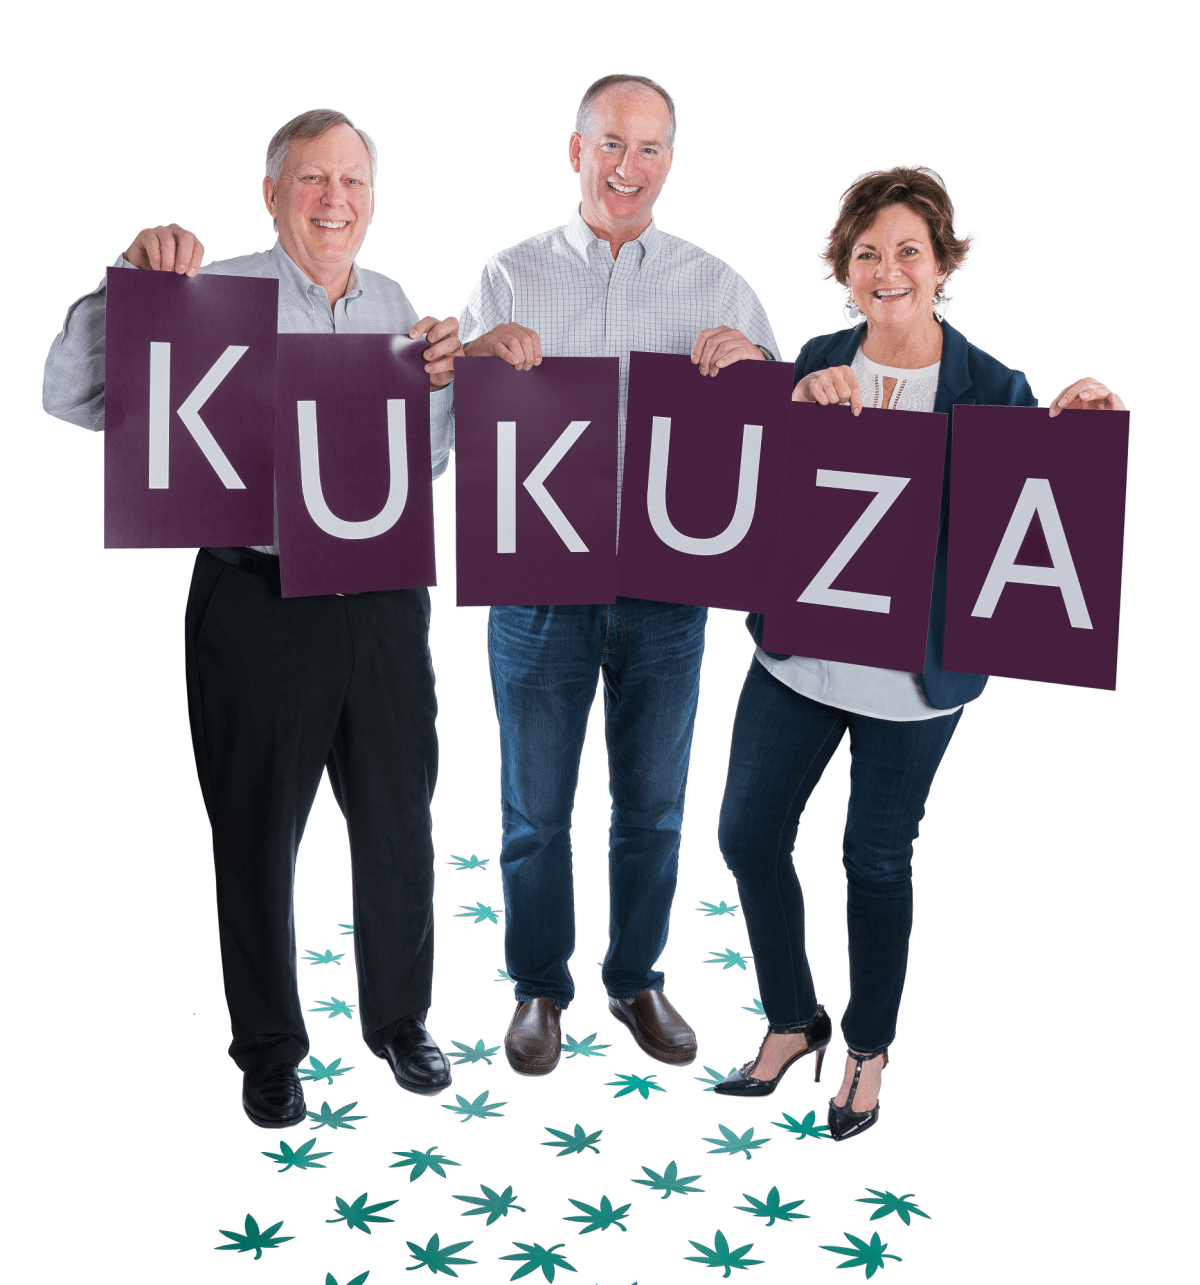 RoseRyan creates Kukuza Associates to focus on Cannabis market